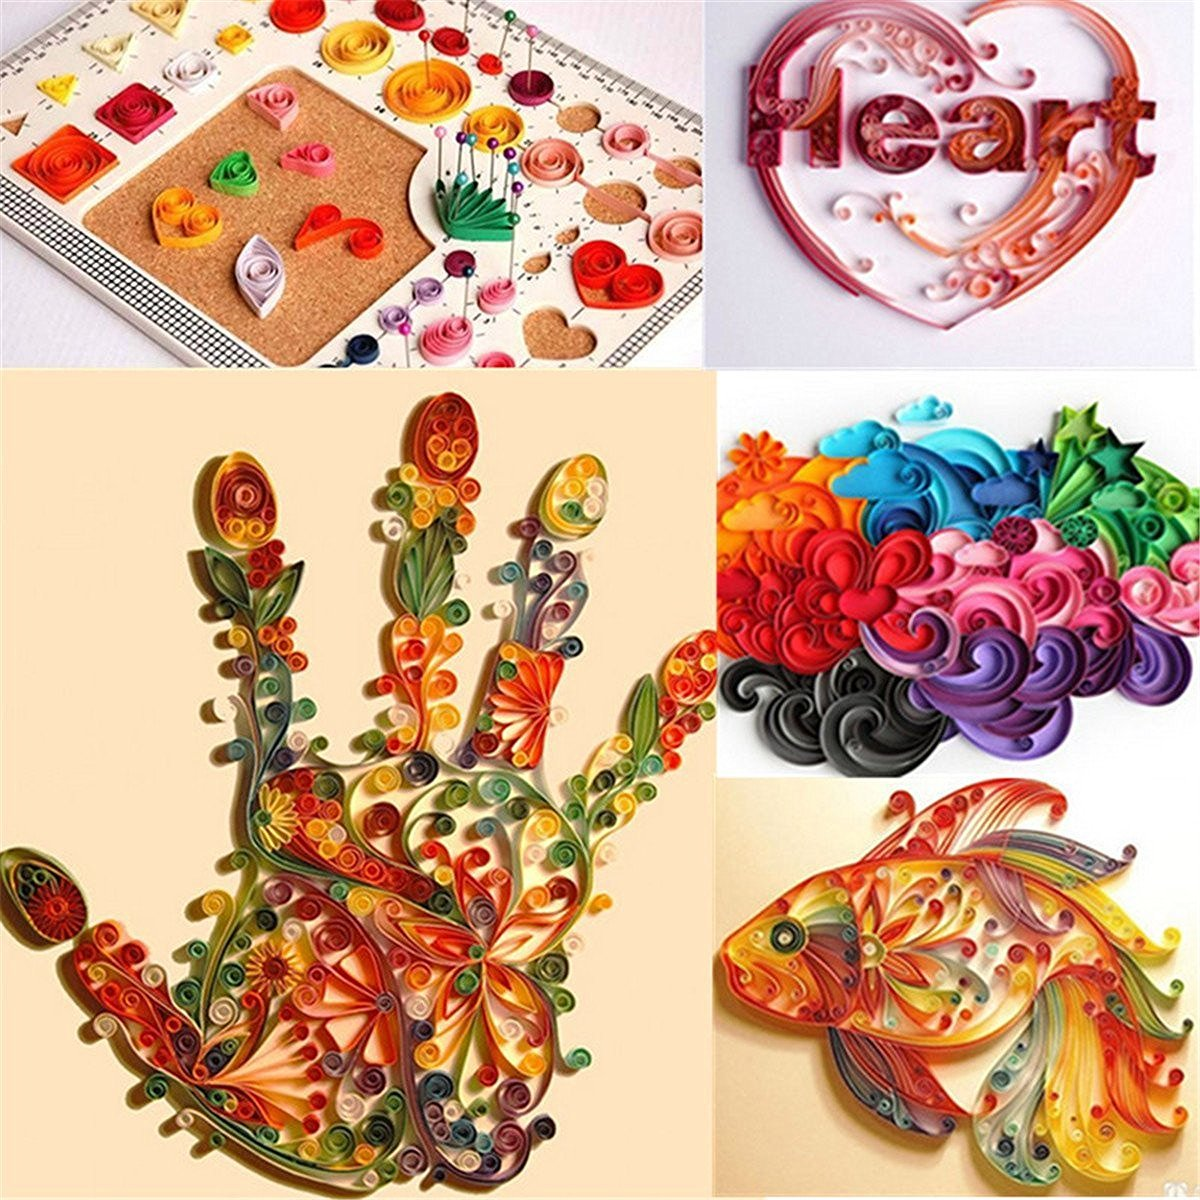 Hosaire Paper Quilling Strips (260 Strips) 26 Colors (3/5/7/10mmx39cm) for Arts and Crafts Projects (39cm10mm) by Hosaire (Image #3)